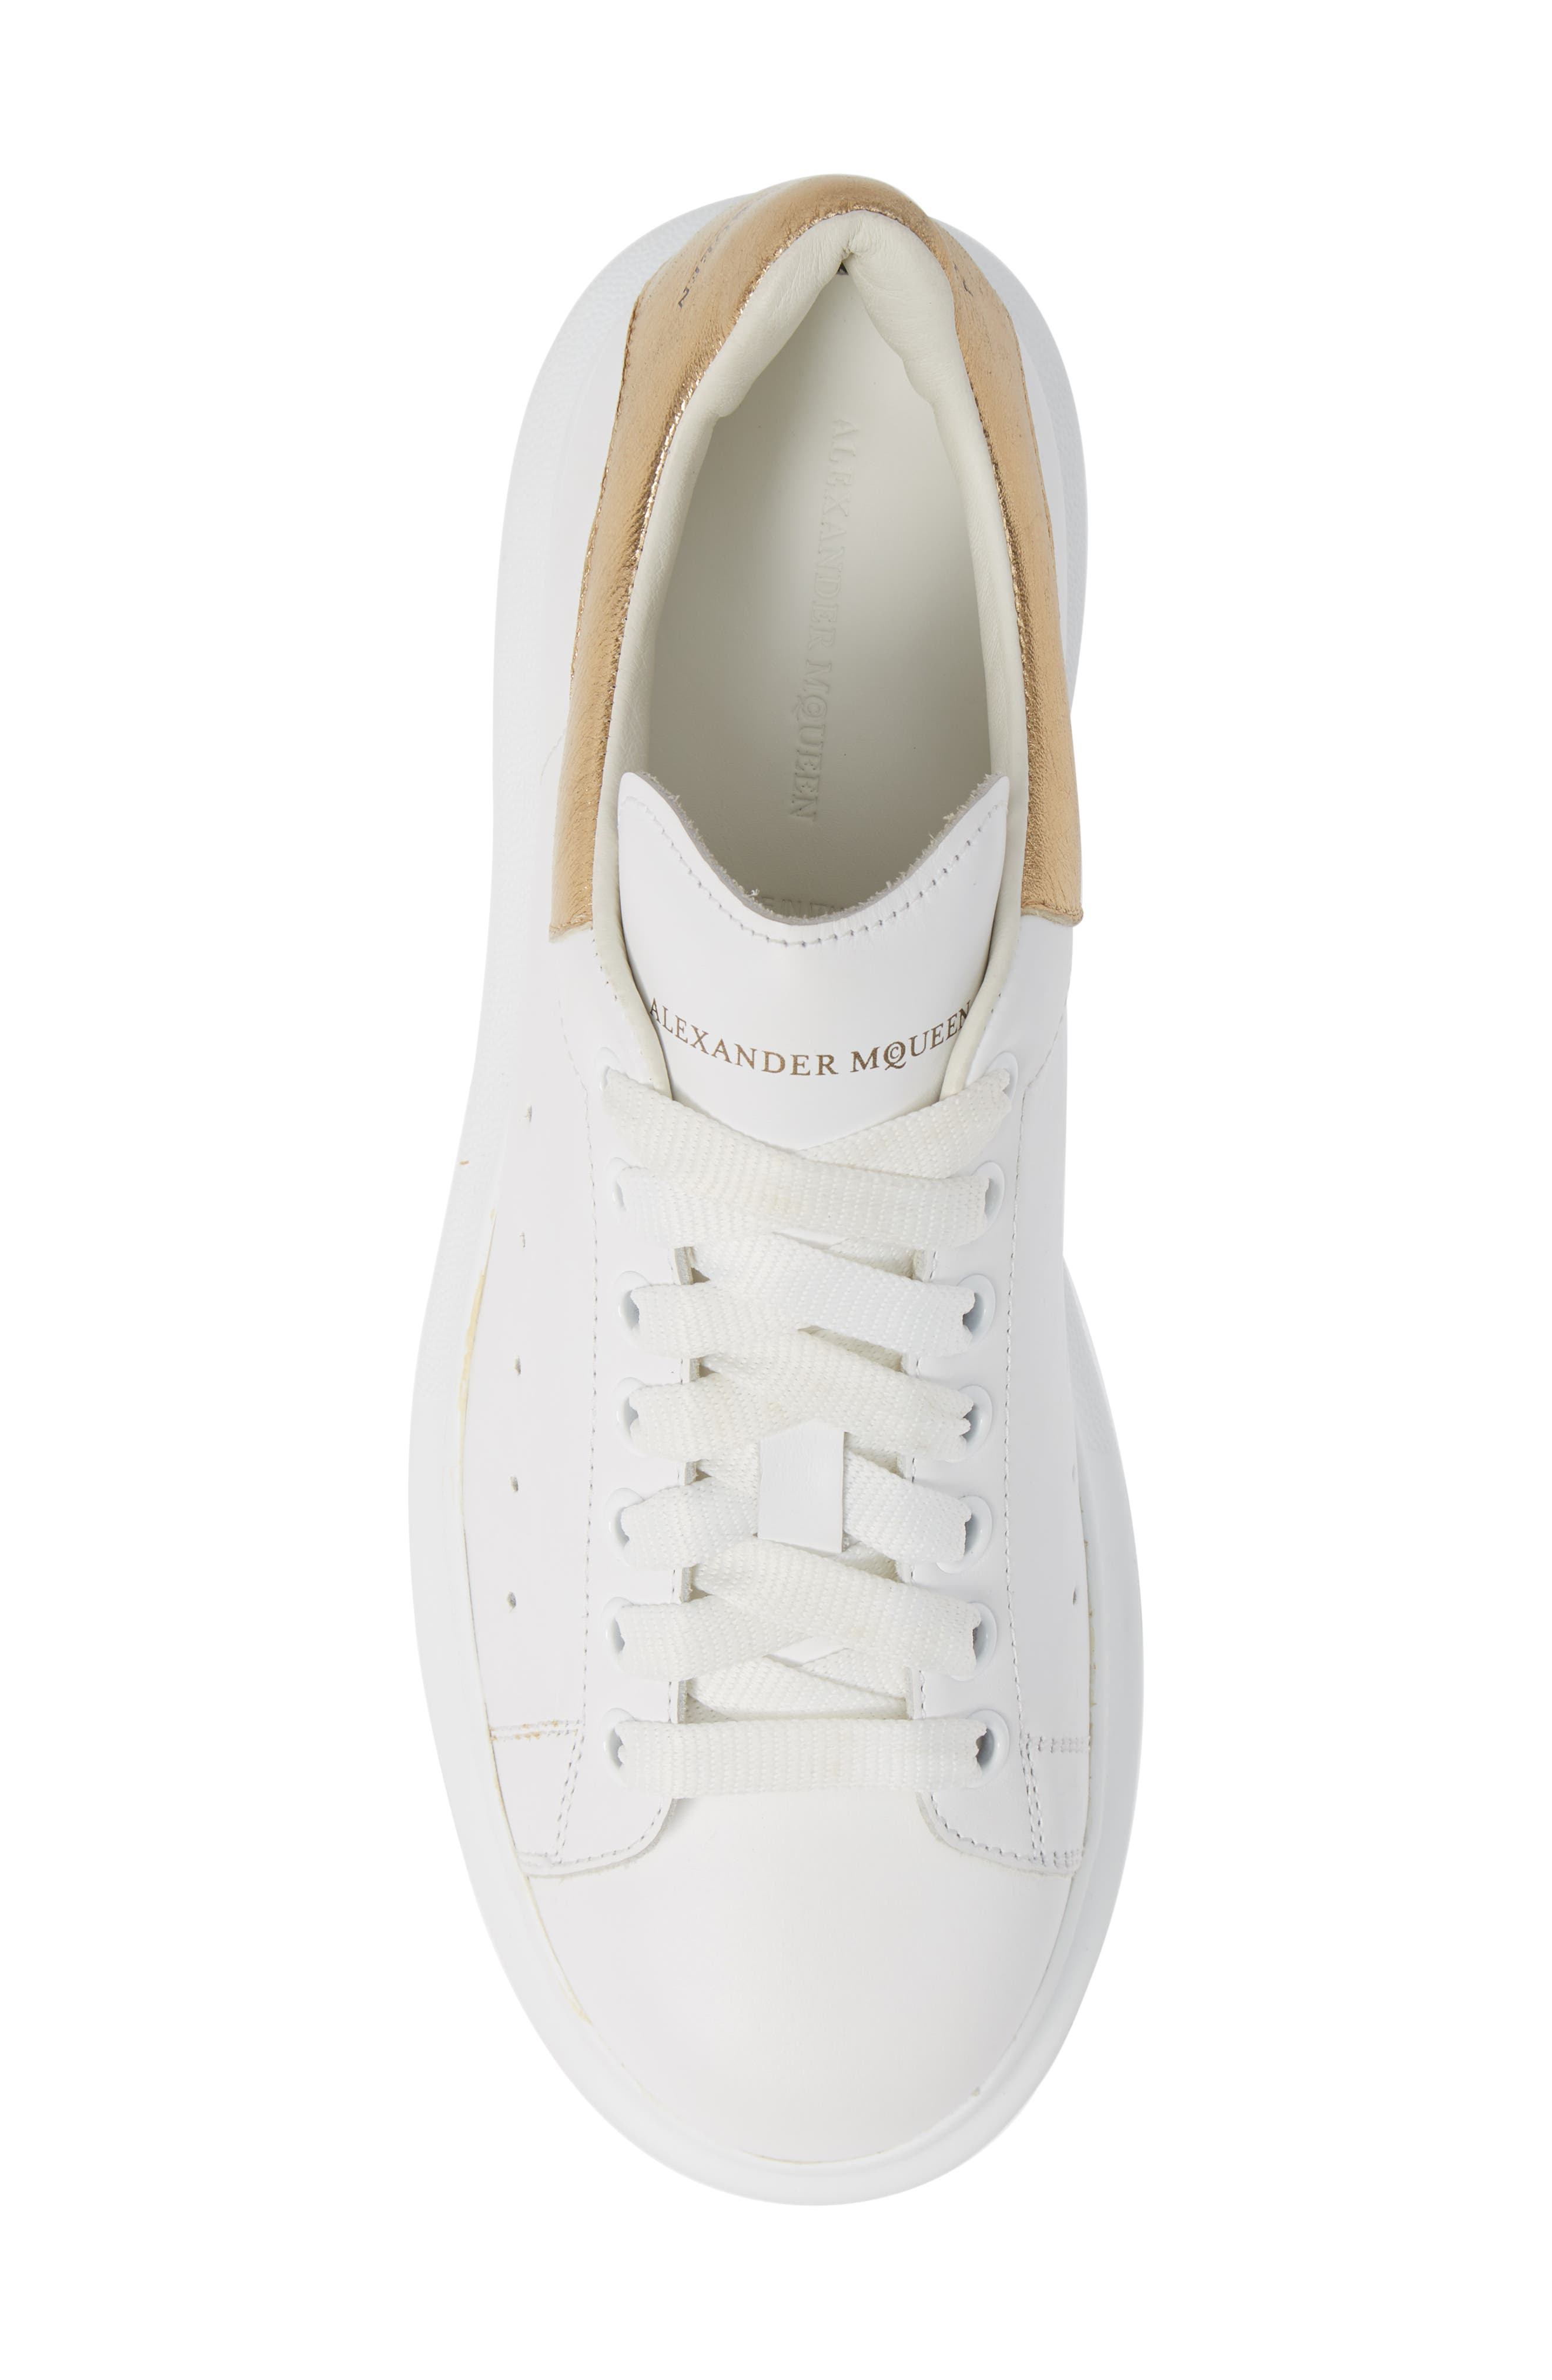 ALEXANDER MCQUEEN, Oversized Sneaker, Alternate thumbnail 5, color, WHITE/ GOLD